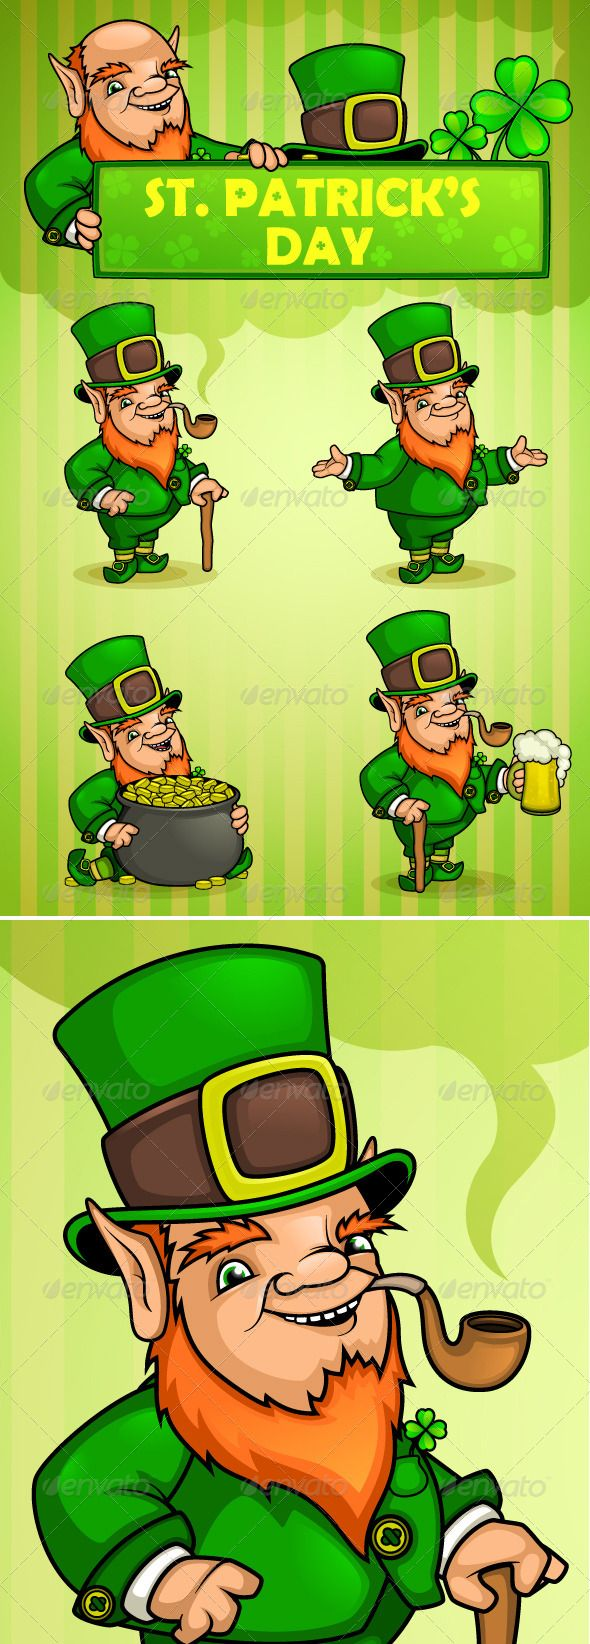 Leprechauns St. Patrick's Day #GraphicRiver Leprechauns St. Patrick's Day. Four positions of the character. - Leprechaun with a cane - Leprechaun his arms - Leprechaun sitting with a pot of gold - Leprechaun with beer And as a Leprechaun holding a sign in his hand. In addition, all the elements leprechaun are symbols that can be combined with each other. You can take your hat off, remove the stick, change hands in some places, and other activities. Includes EPS files, AI files and PSD files…